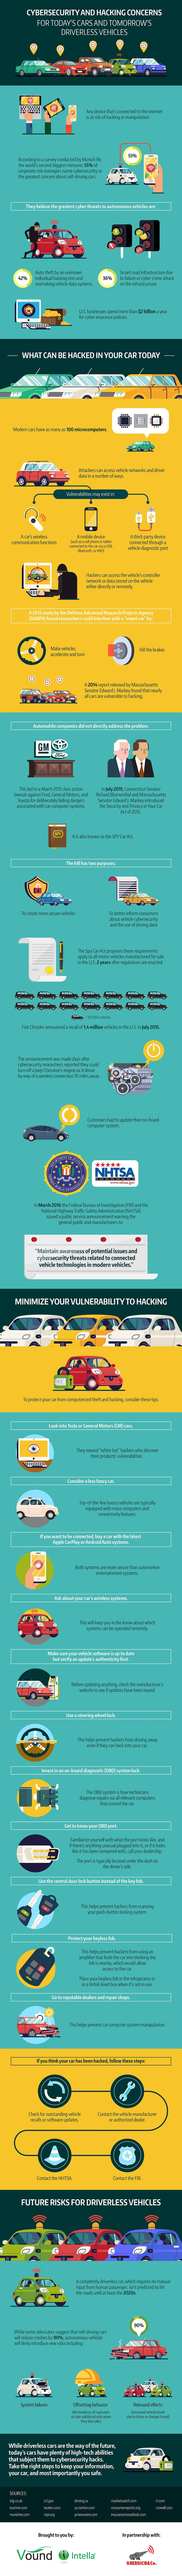 Cybersecurity and Hacking Concerns for Today's Cars and Tomorrow's Driverless Vehicles